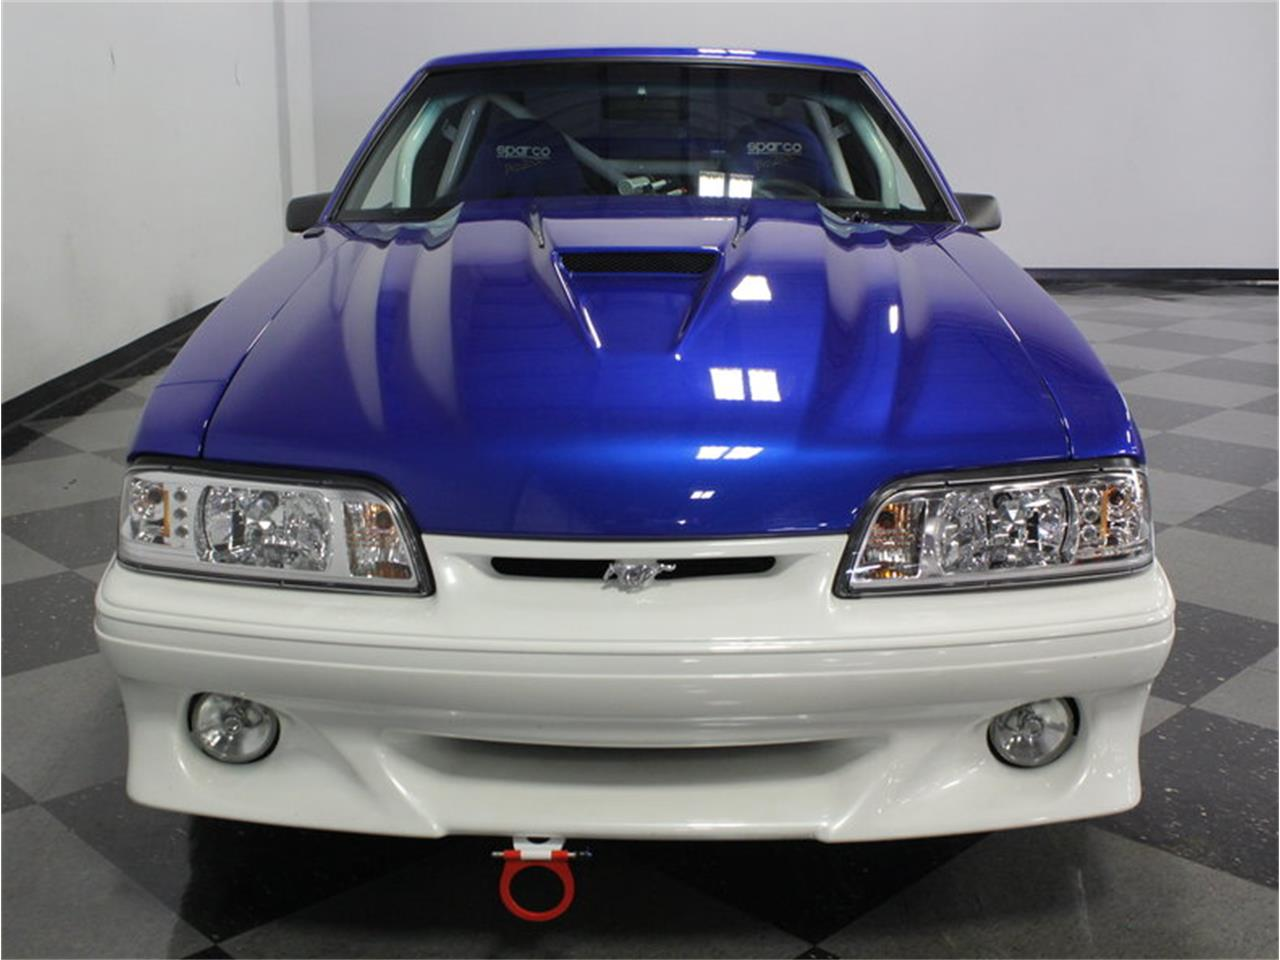 1989 Ford Mustang Gt Price